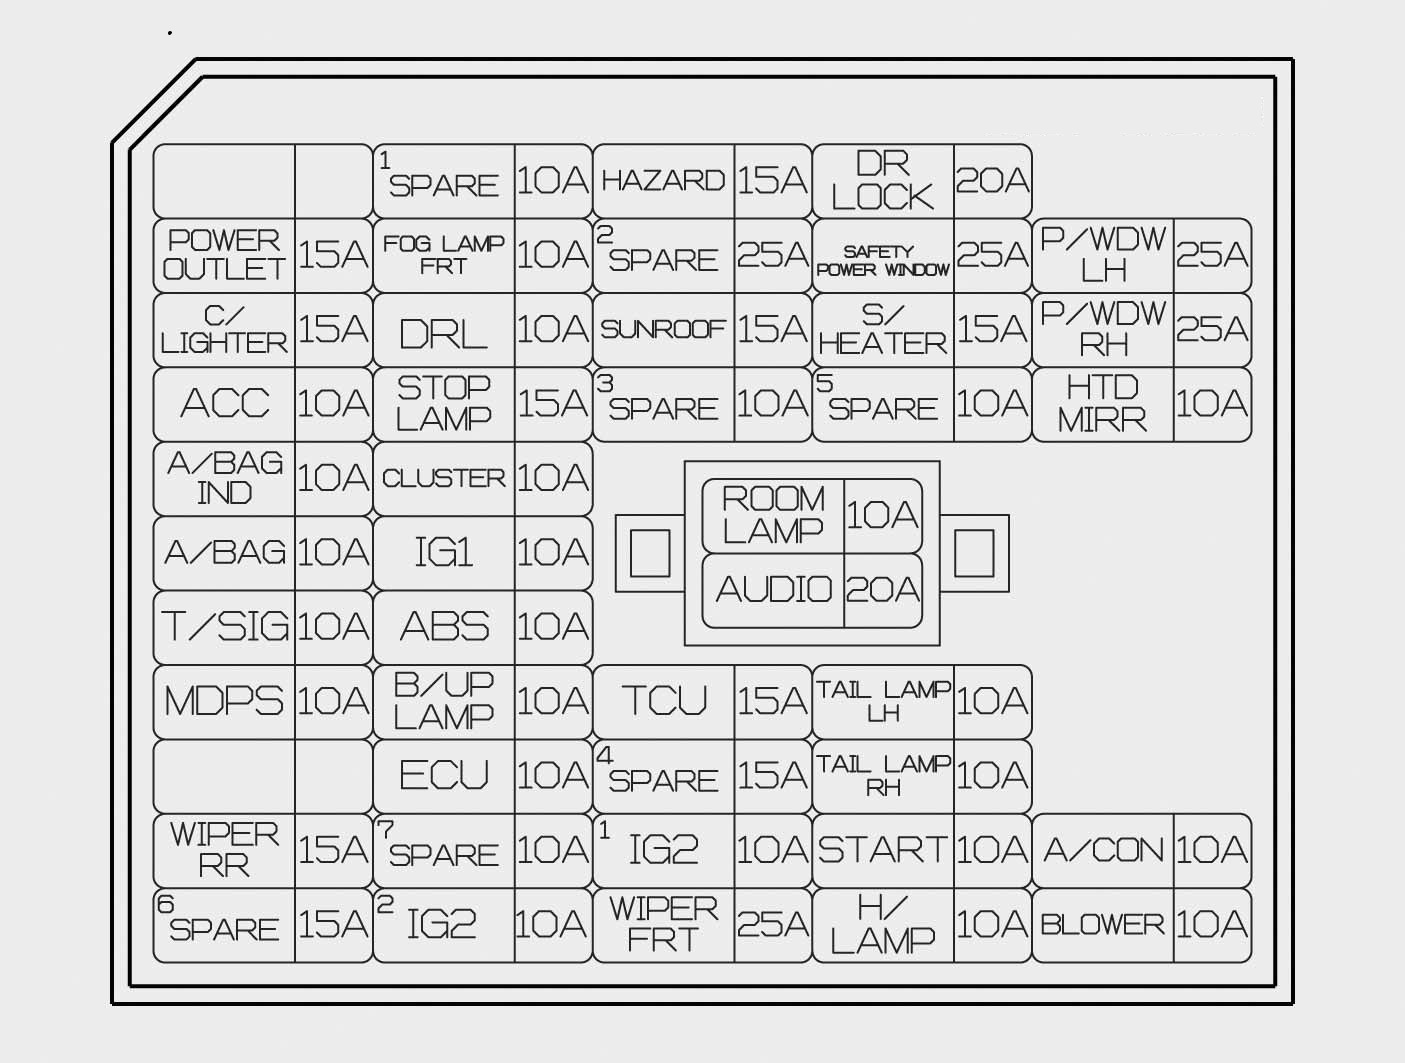 hight resolution of lexus lx470 fuse box diagram wiring library diagram as well vanagon fuse diagram moreover 1981 honda cx500 wiring